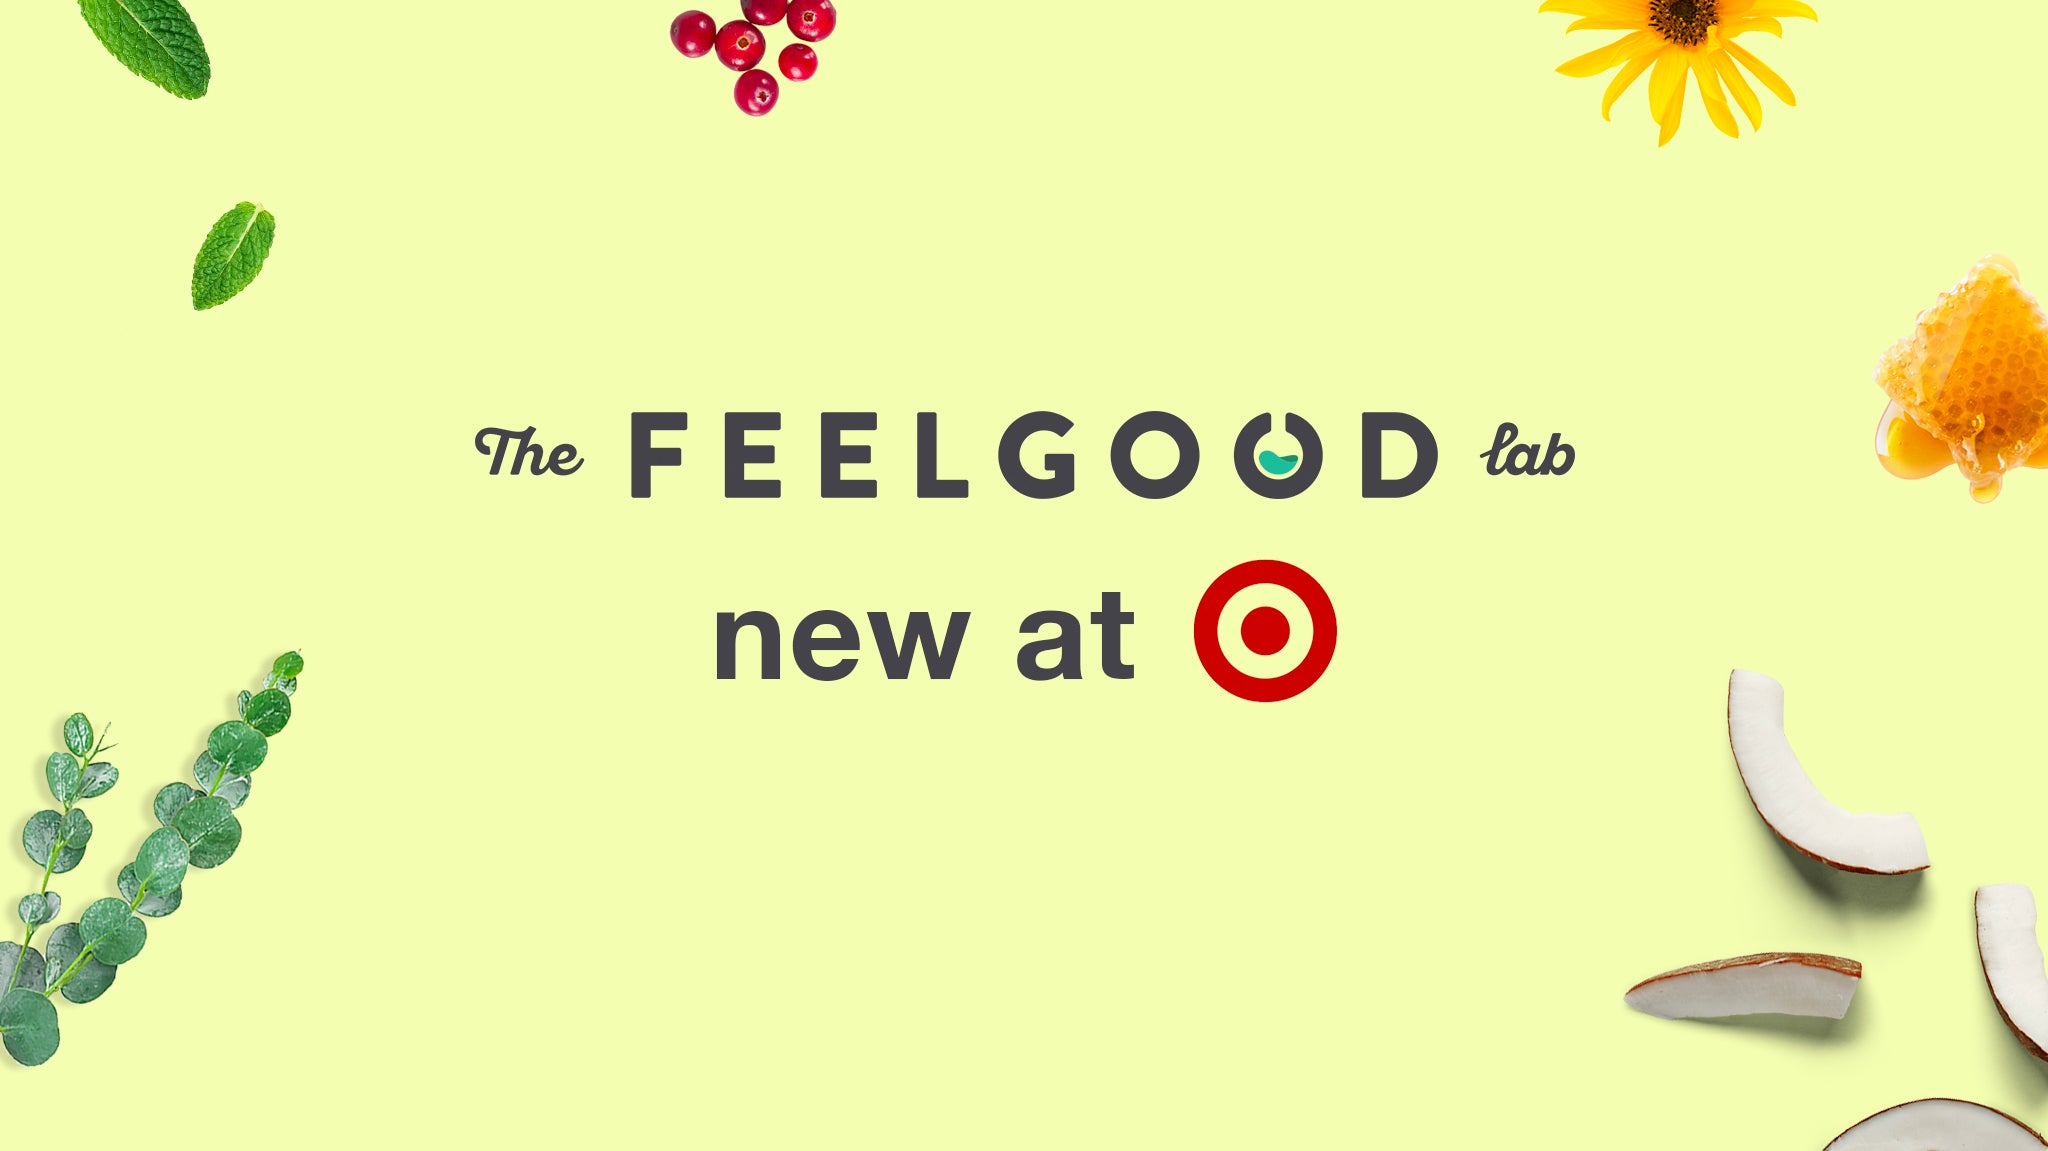 The Feel Good Lab is new at Target